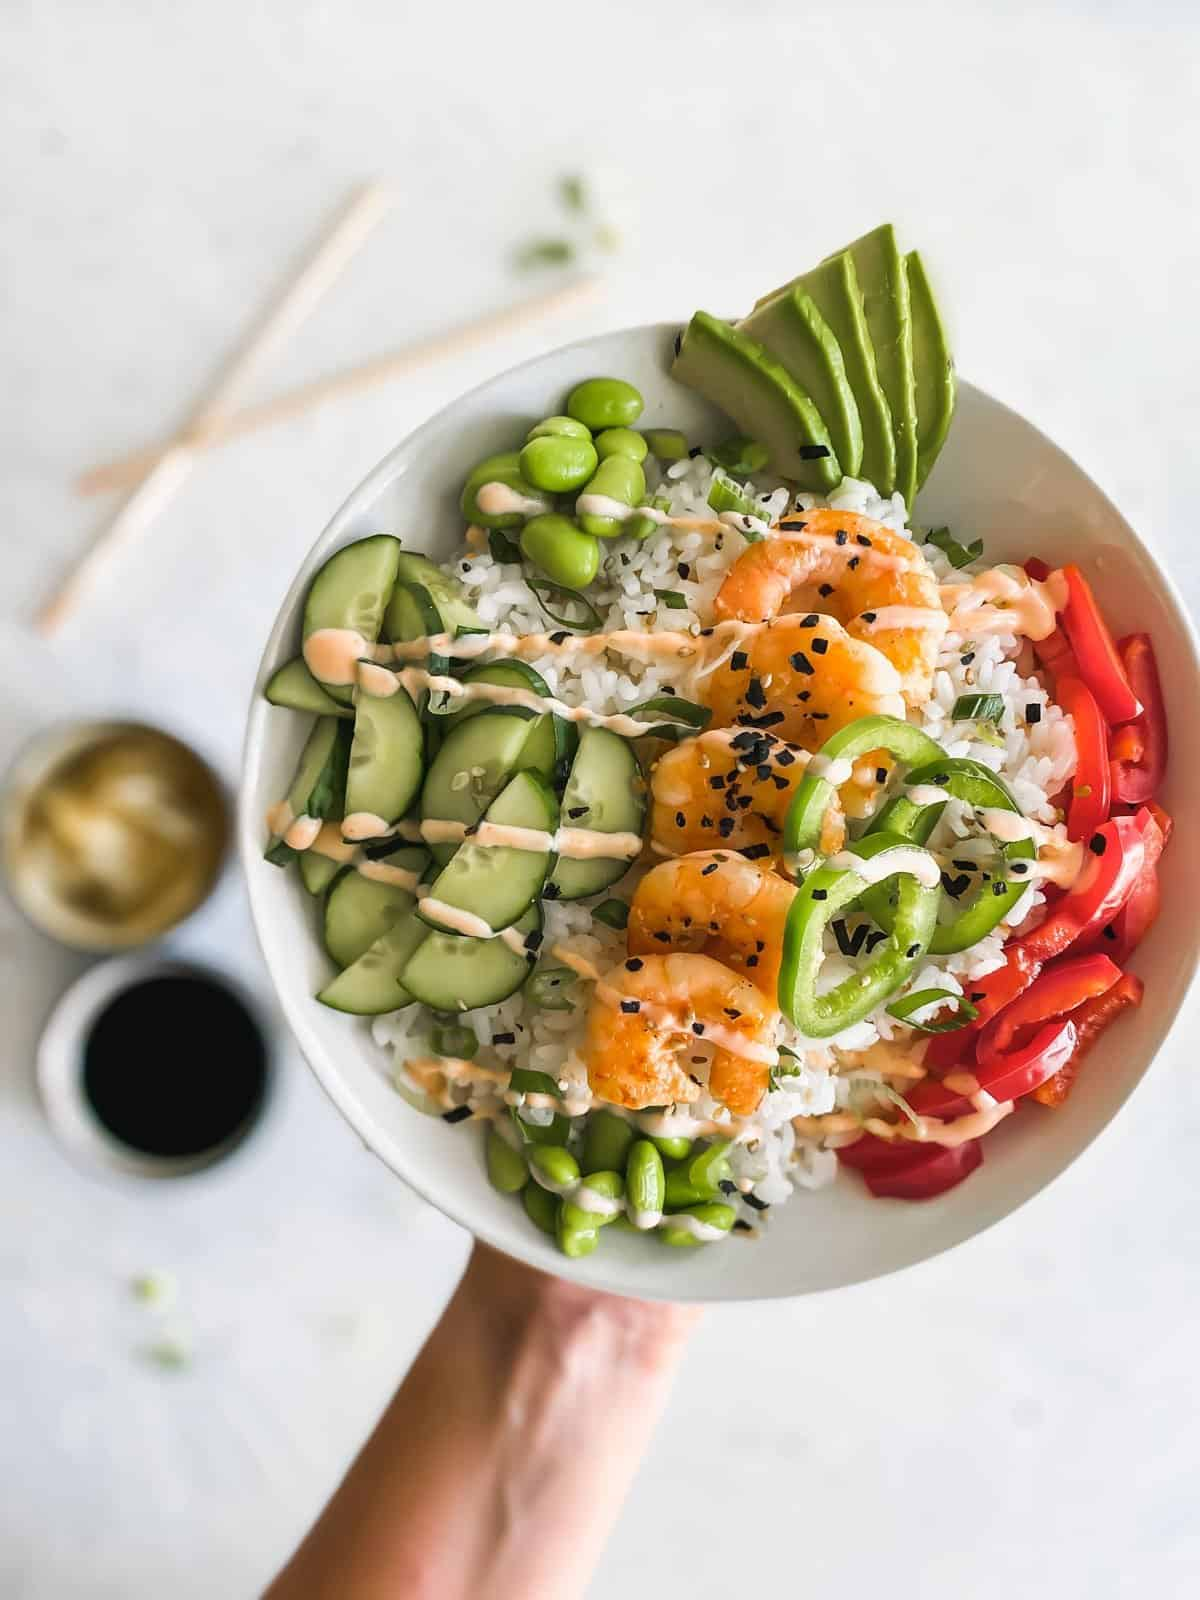 shrimp poke bowl raised in the air with chopsticks, sushi ginger, and soy sauce in background